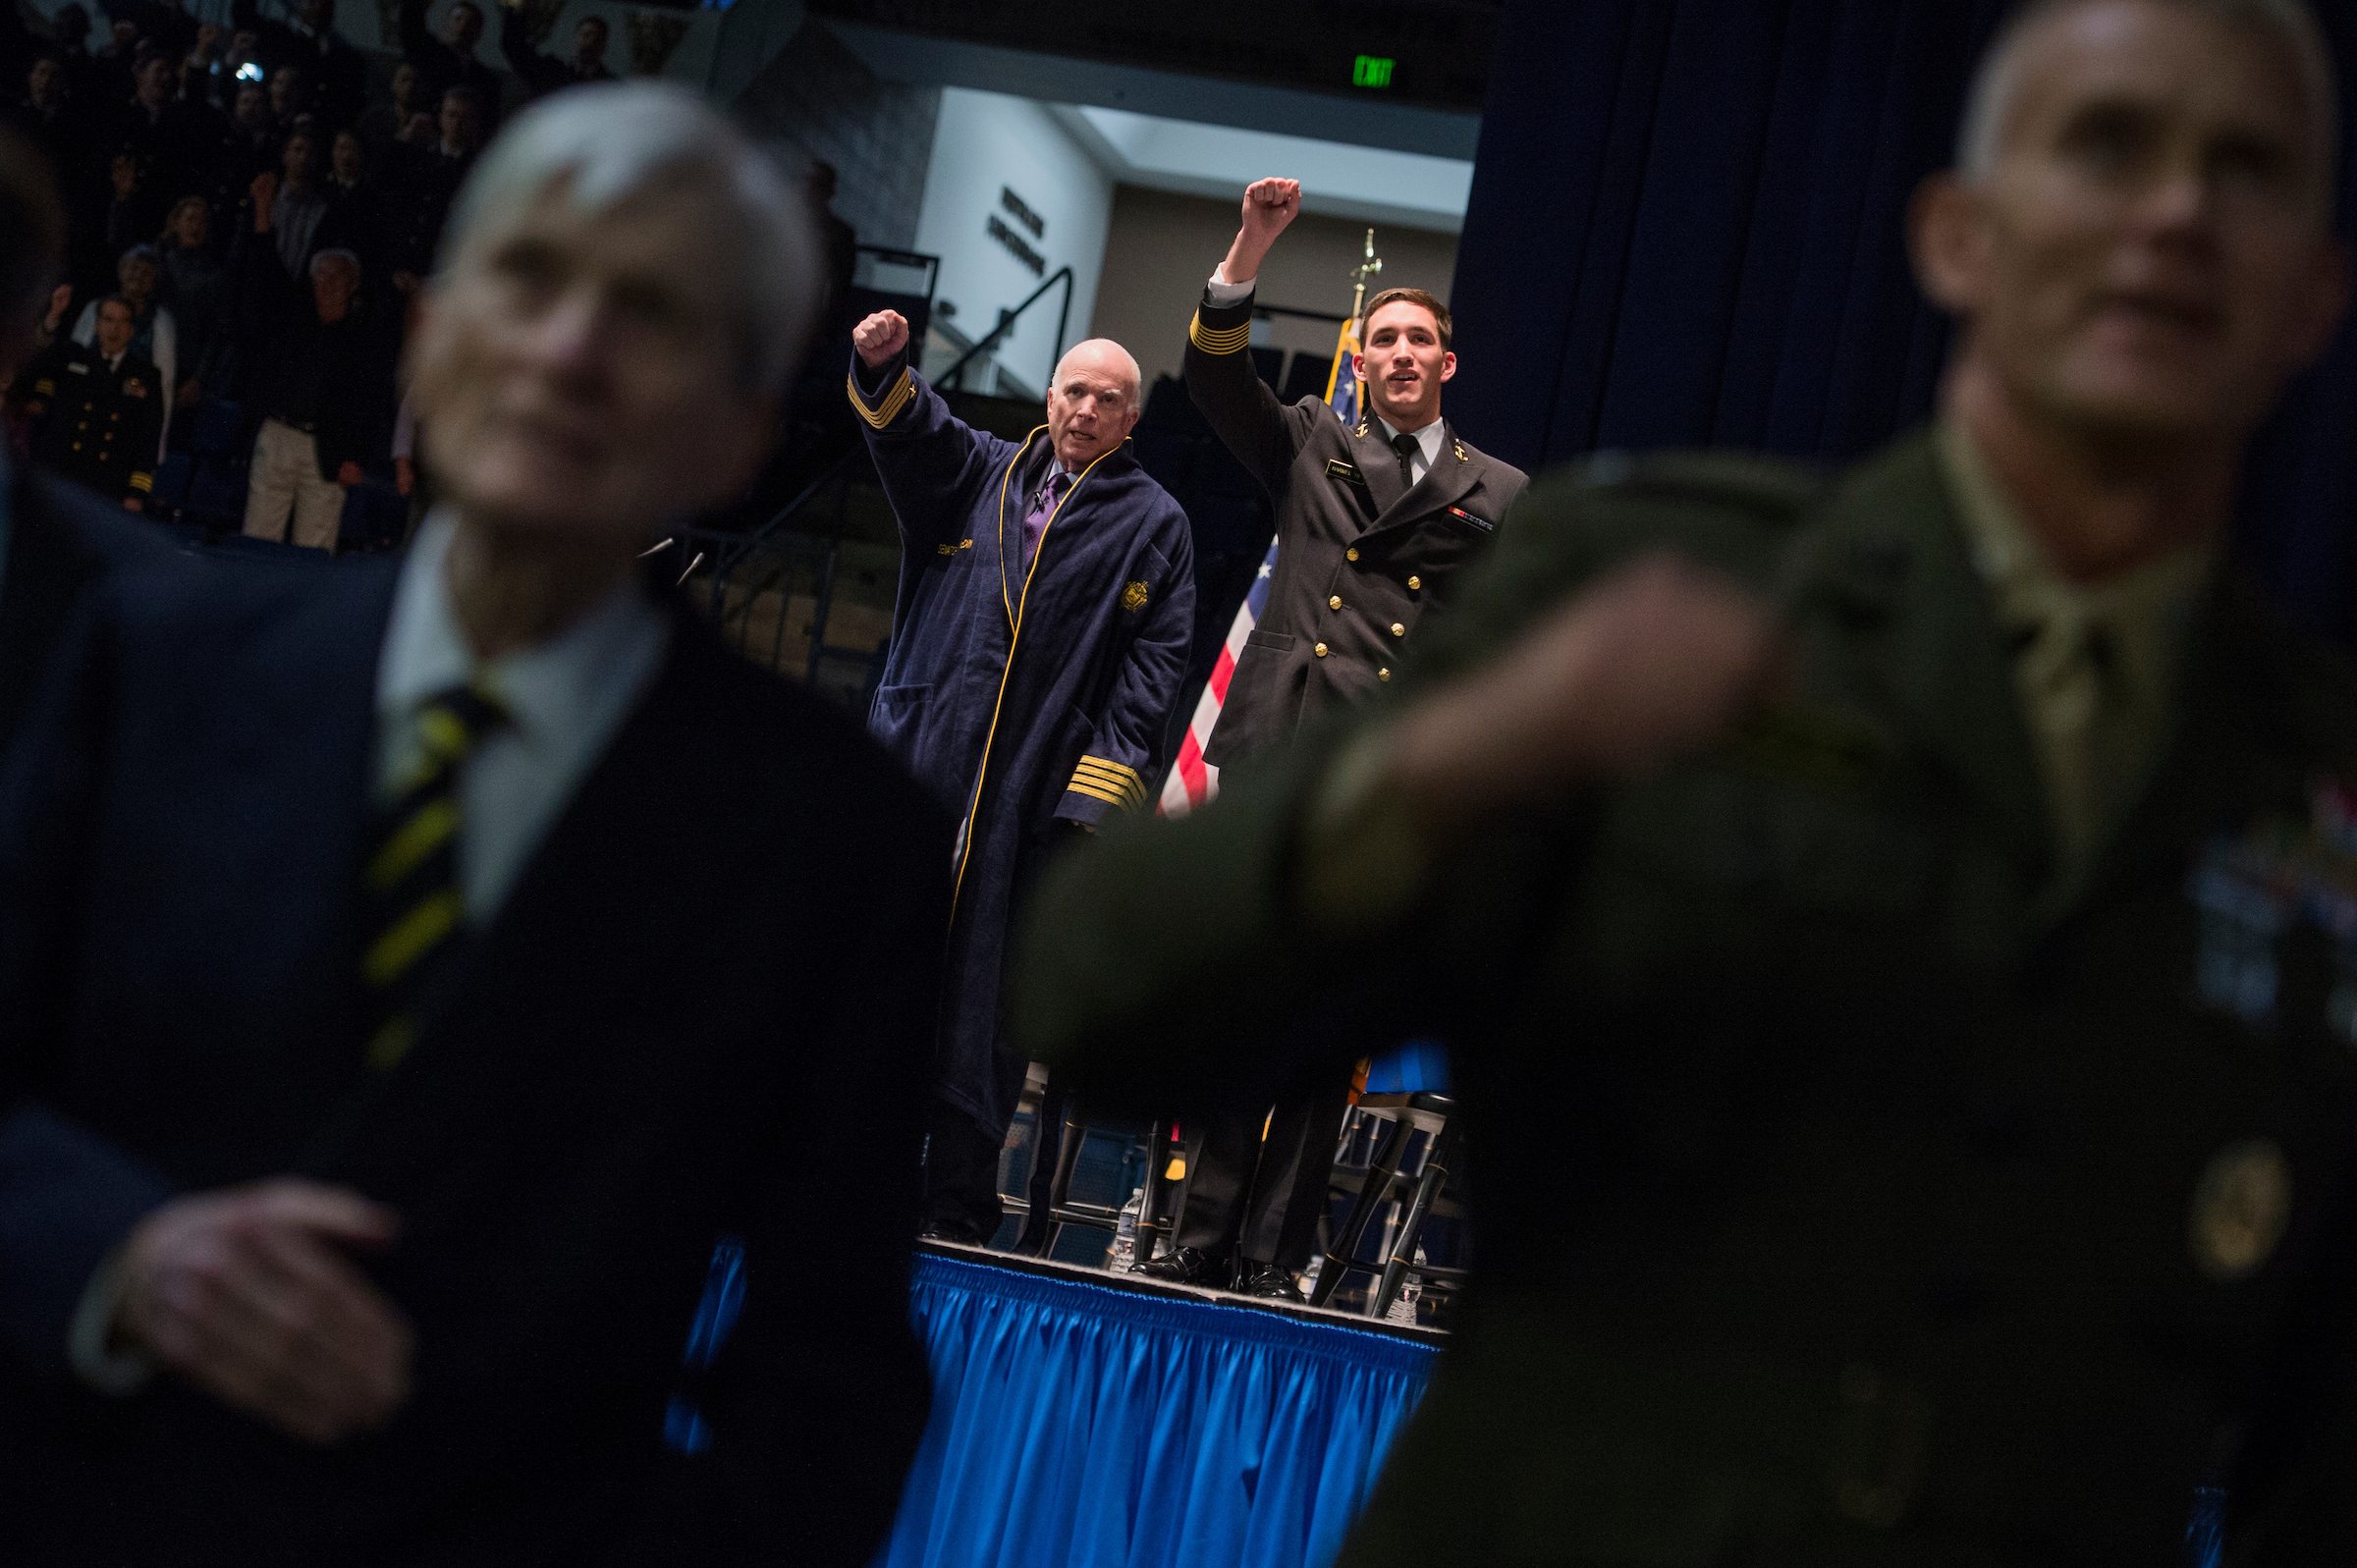 October 2017: Sen. John McCain, R-Ariz., and MIDN Brigade Commander Austin Harmel, are seen on stage after McCain and former Sen. John Warner, R-Va., left, who was Secretary of the Navy, addressed the Brigade of Midshipmen at the Naval Academy in Annapolis, Md. McCain's address was almost 50 years to the day that his plane was shot down over Vietnam and he was taken as a prisoner of war. (Photo By Tom Williams/CQ Roll Call)